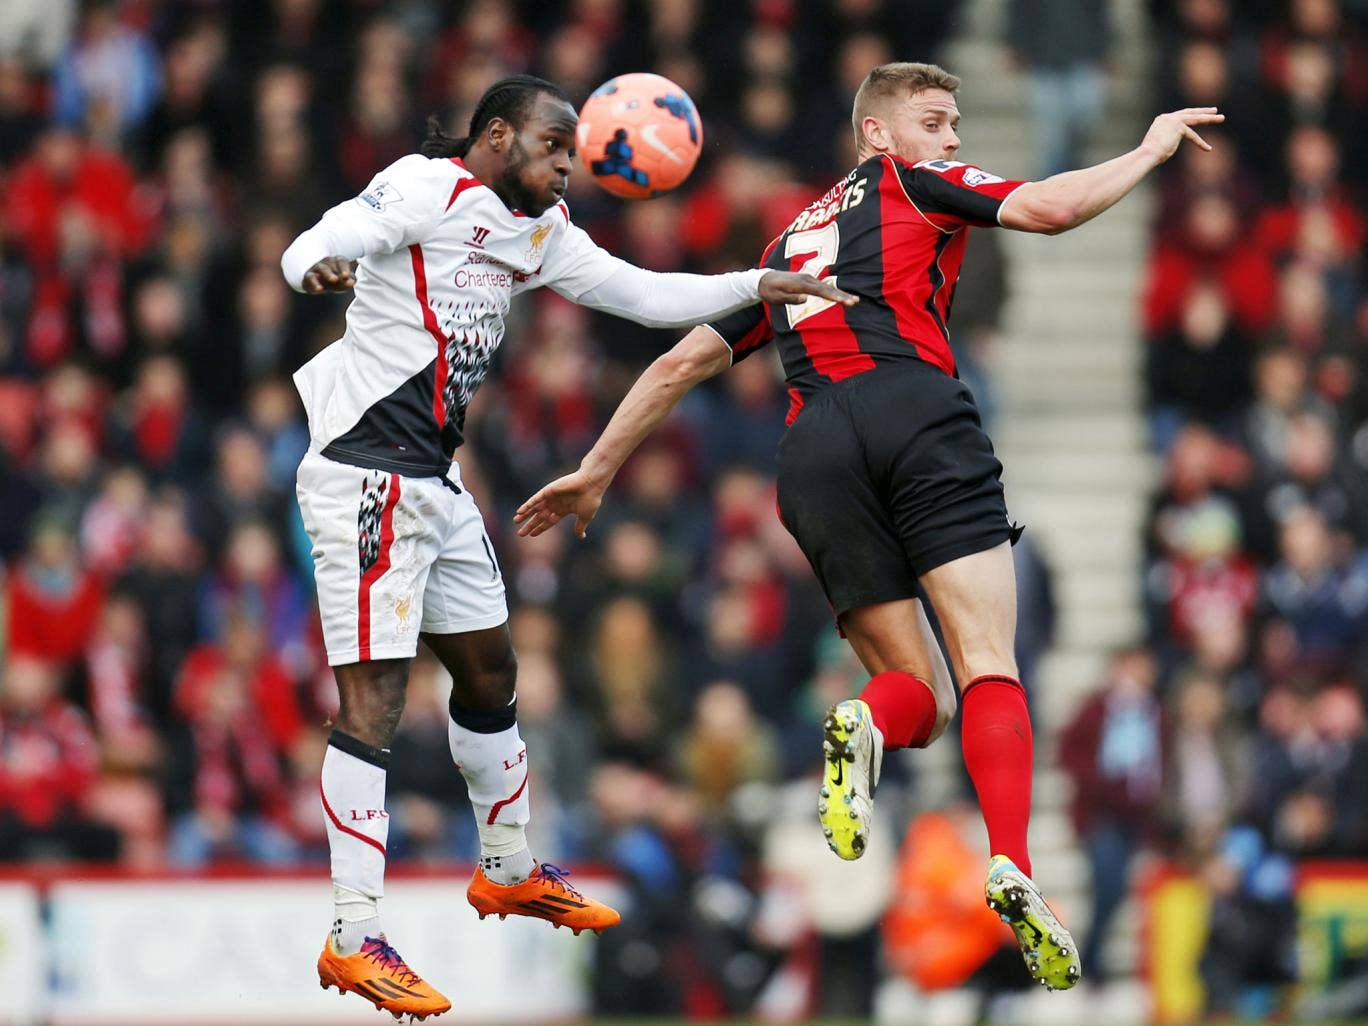 Liverpool's Victor Moses, left, fights for the ball with AFC Bournemouth's Simon Francis